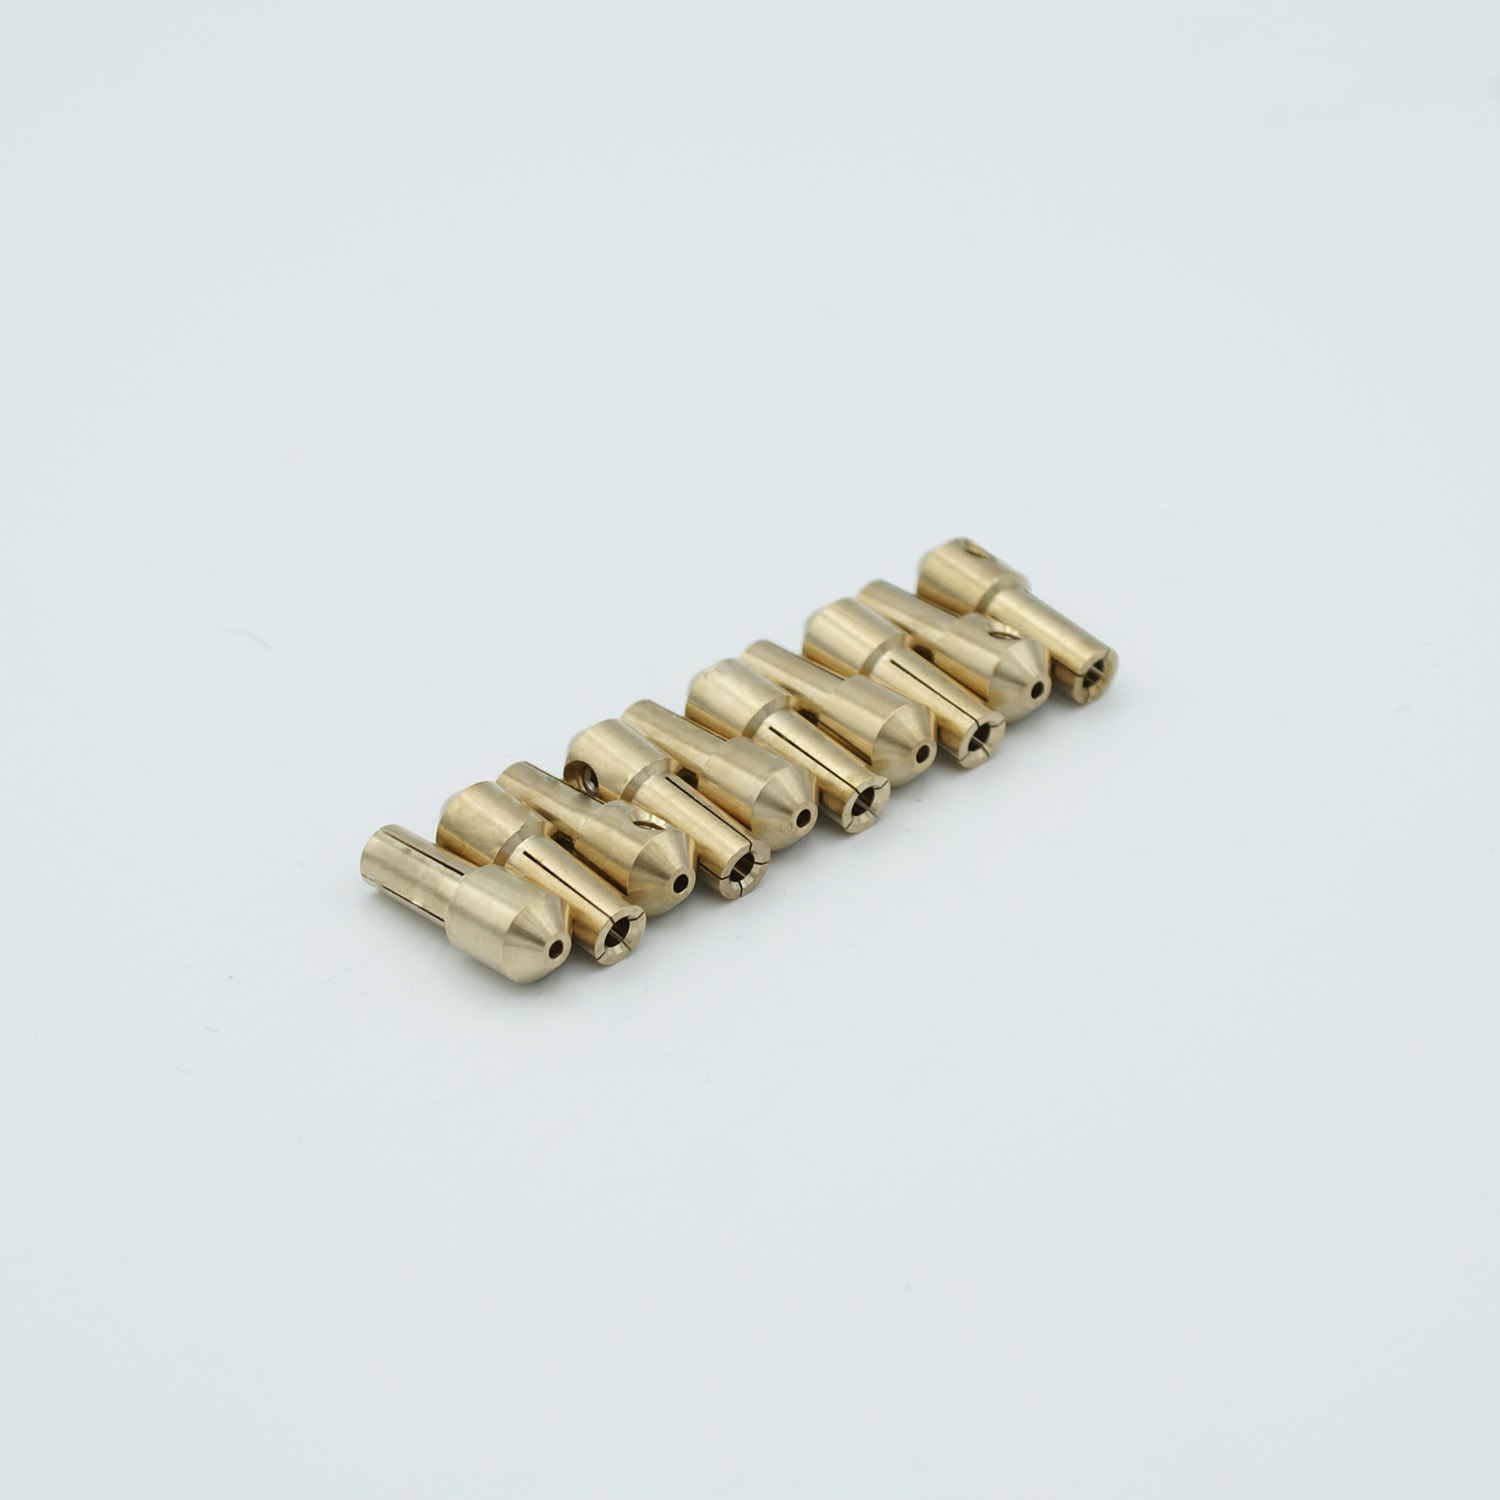 Power push-on connectors for pin size 0,04